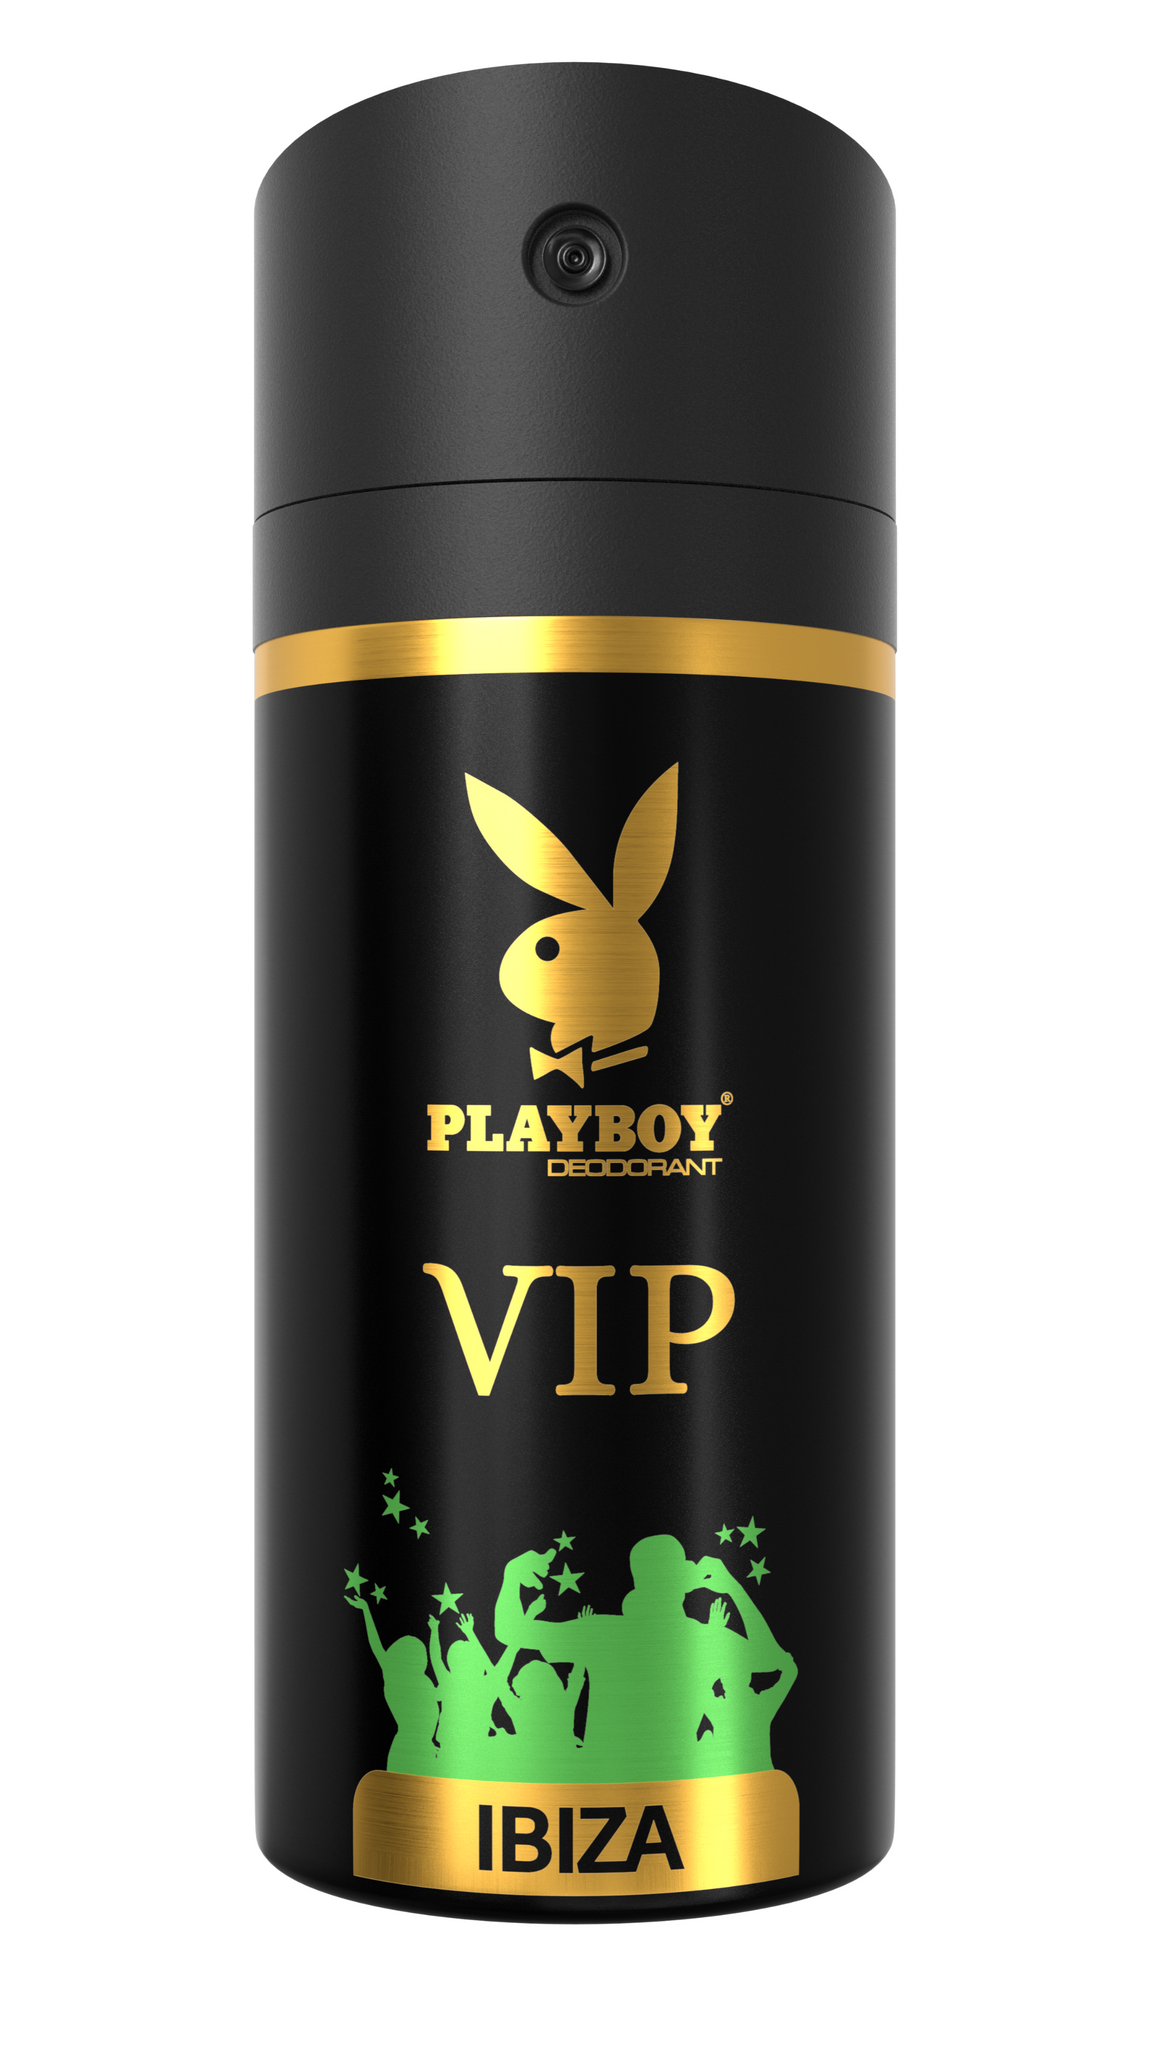 Playboy VIP Ibiza - Deodorant - 150ml 36-Pack